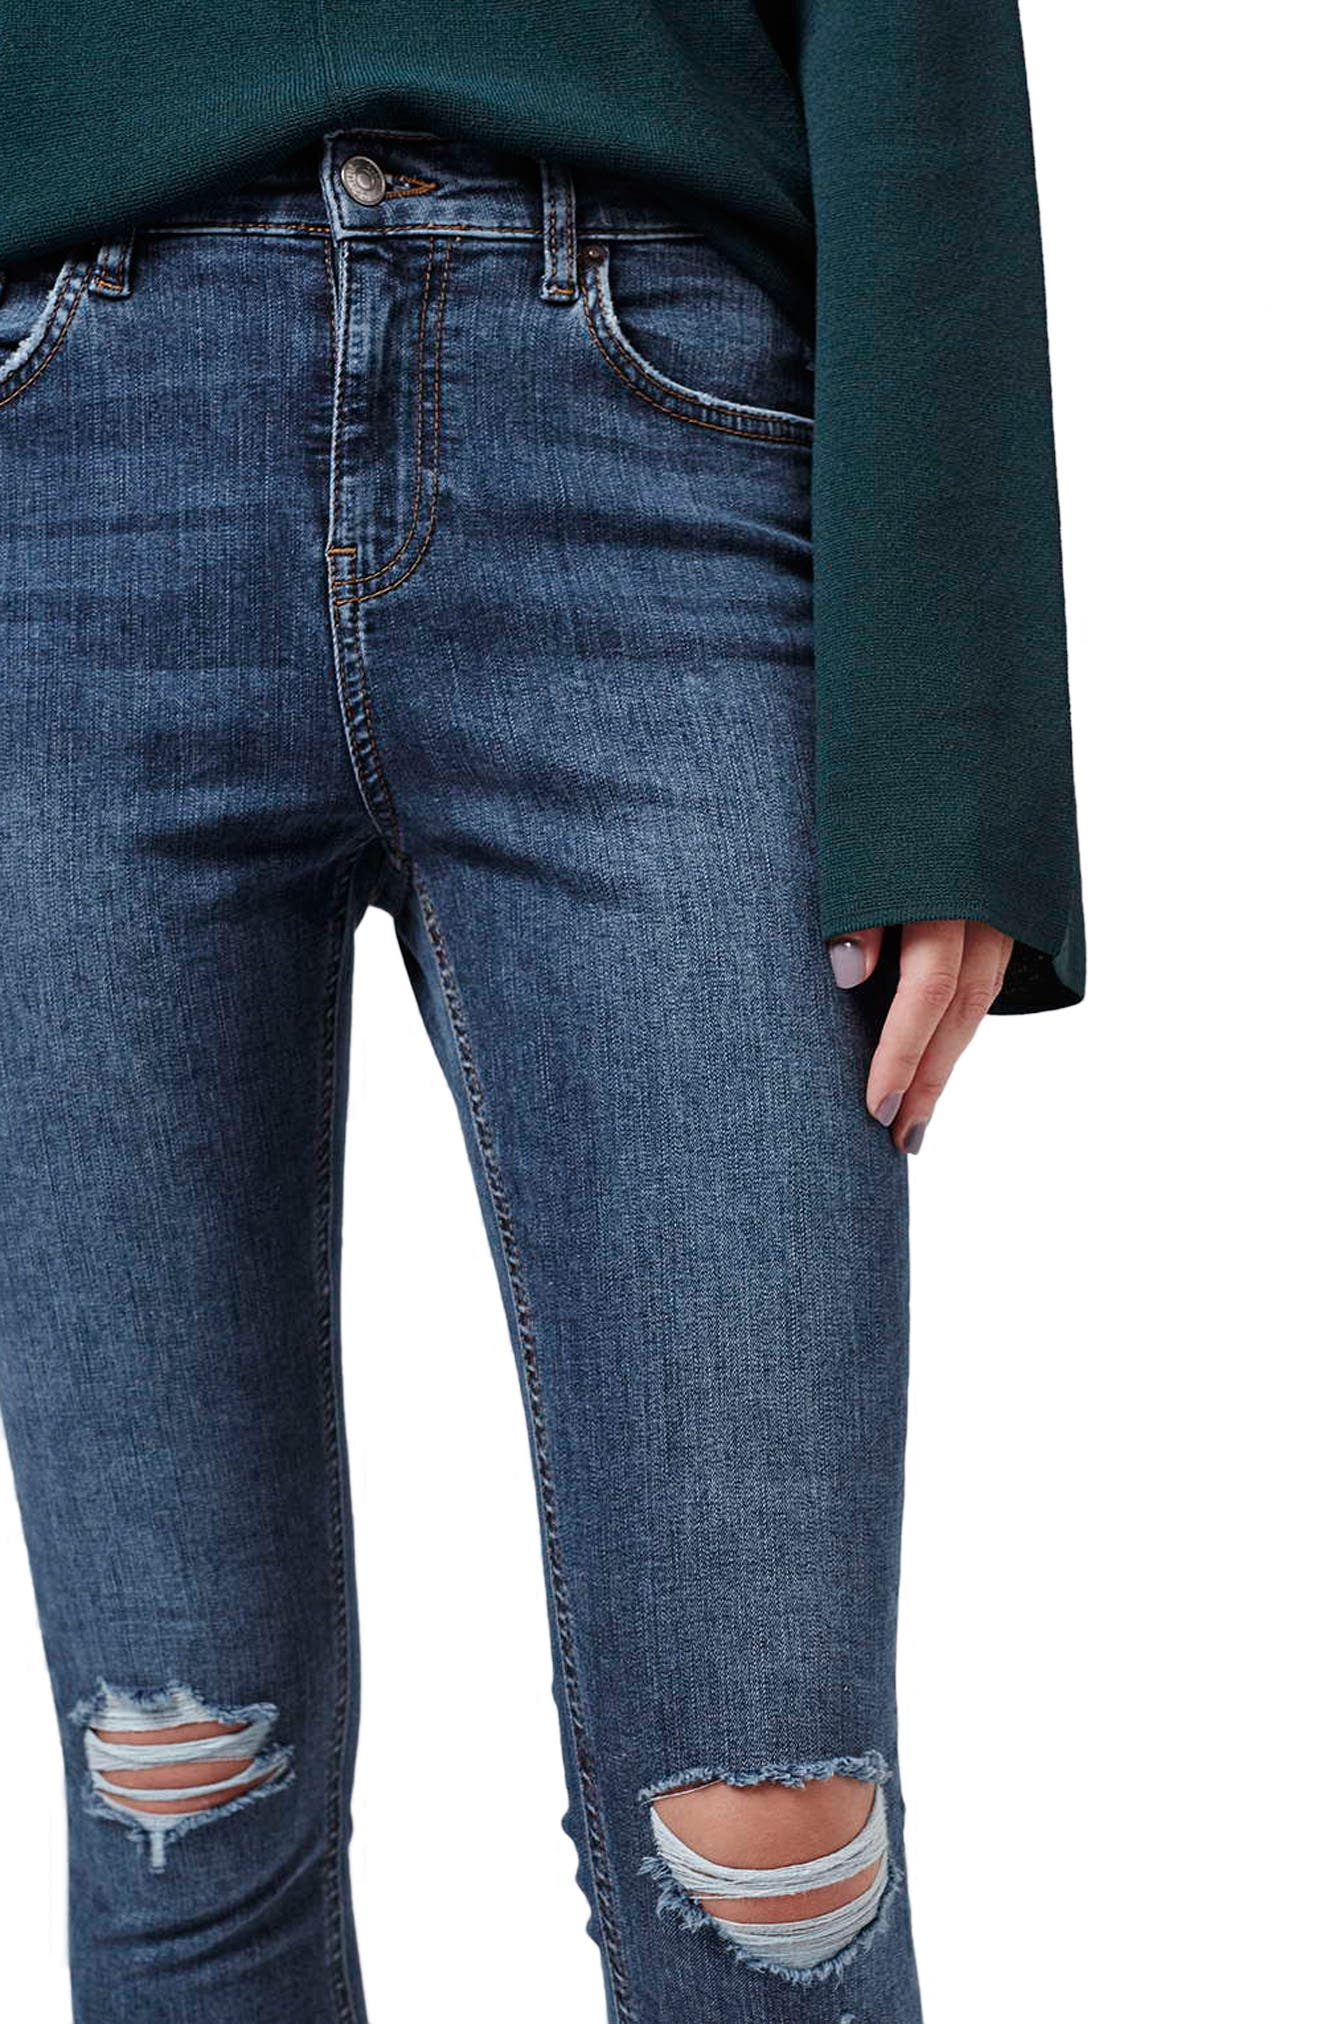 TOPSHOP, Moto 'Jamie' Ripped Skinny Ankle Jeans, Alternate thumbnail 5, color, MID DENIM